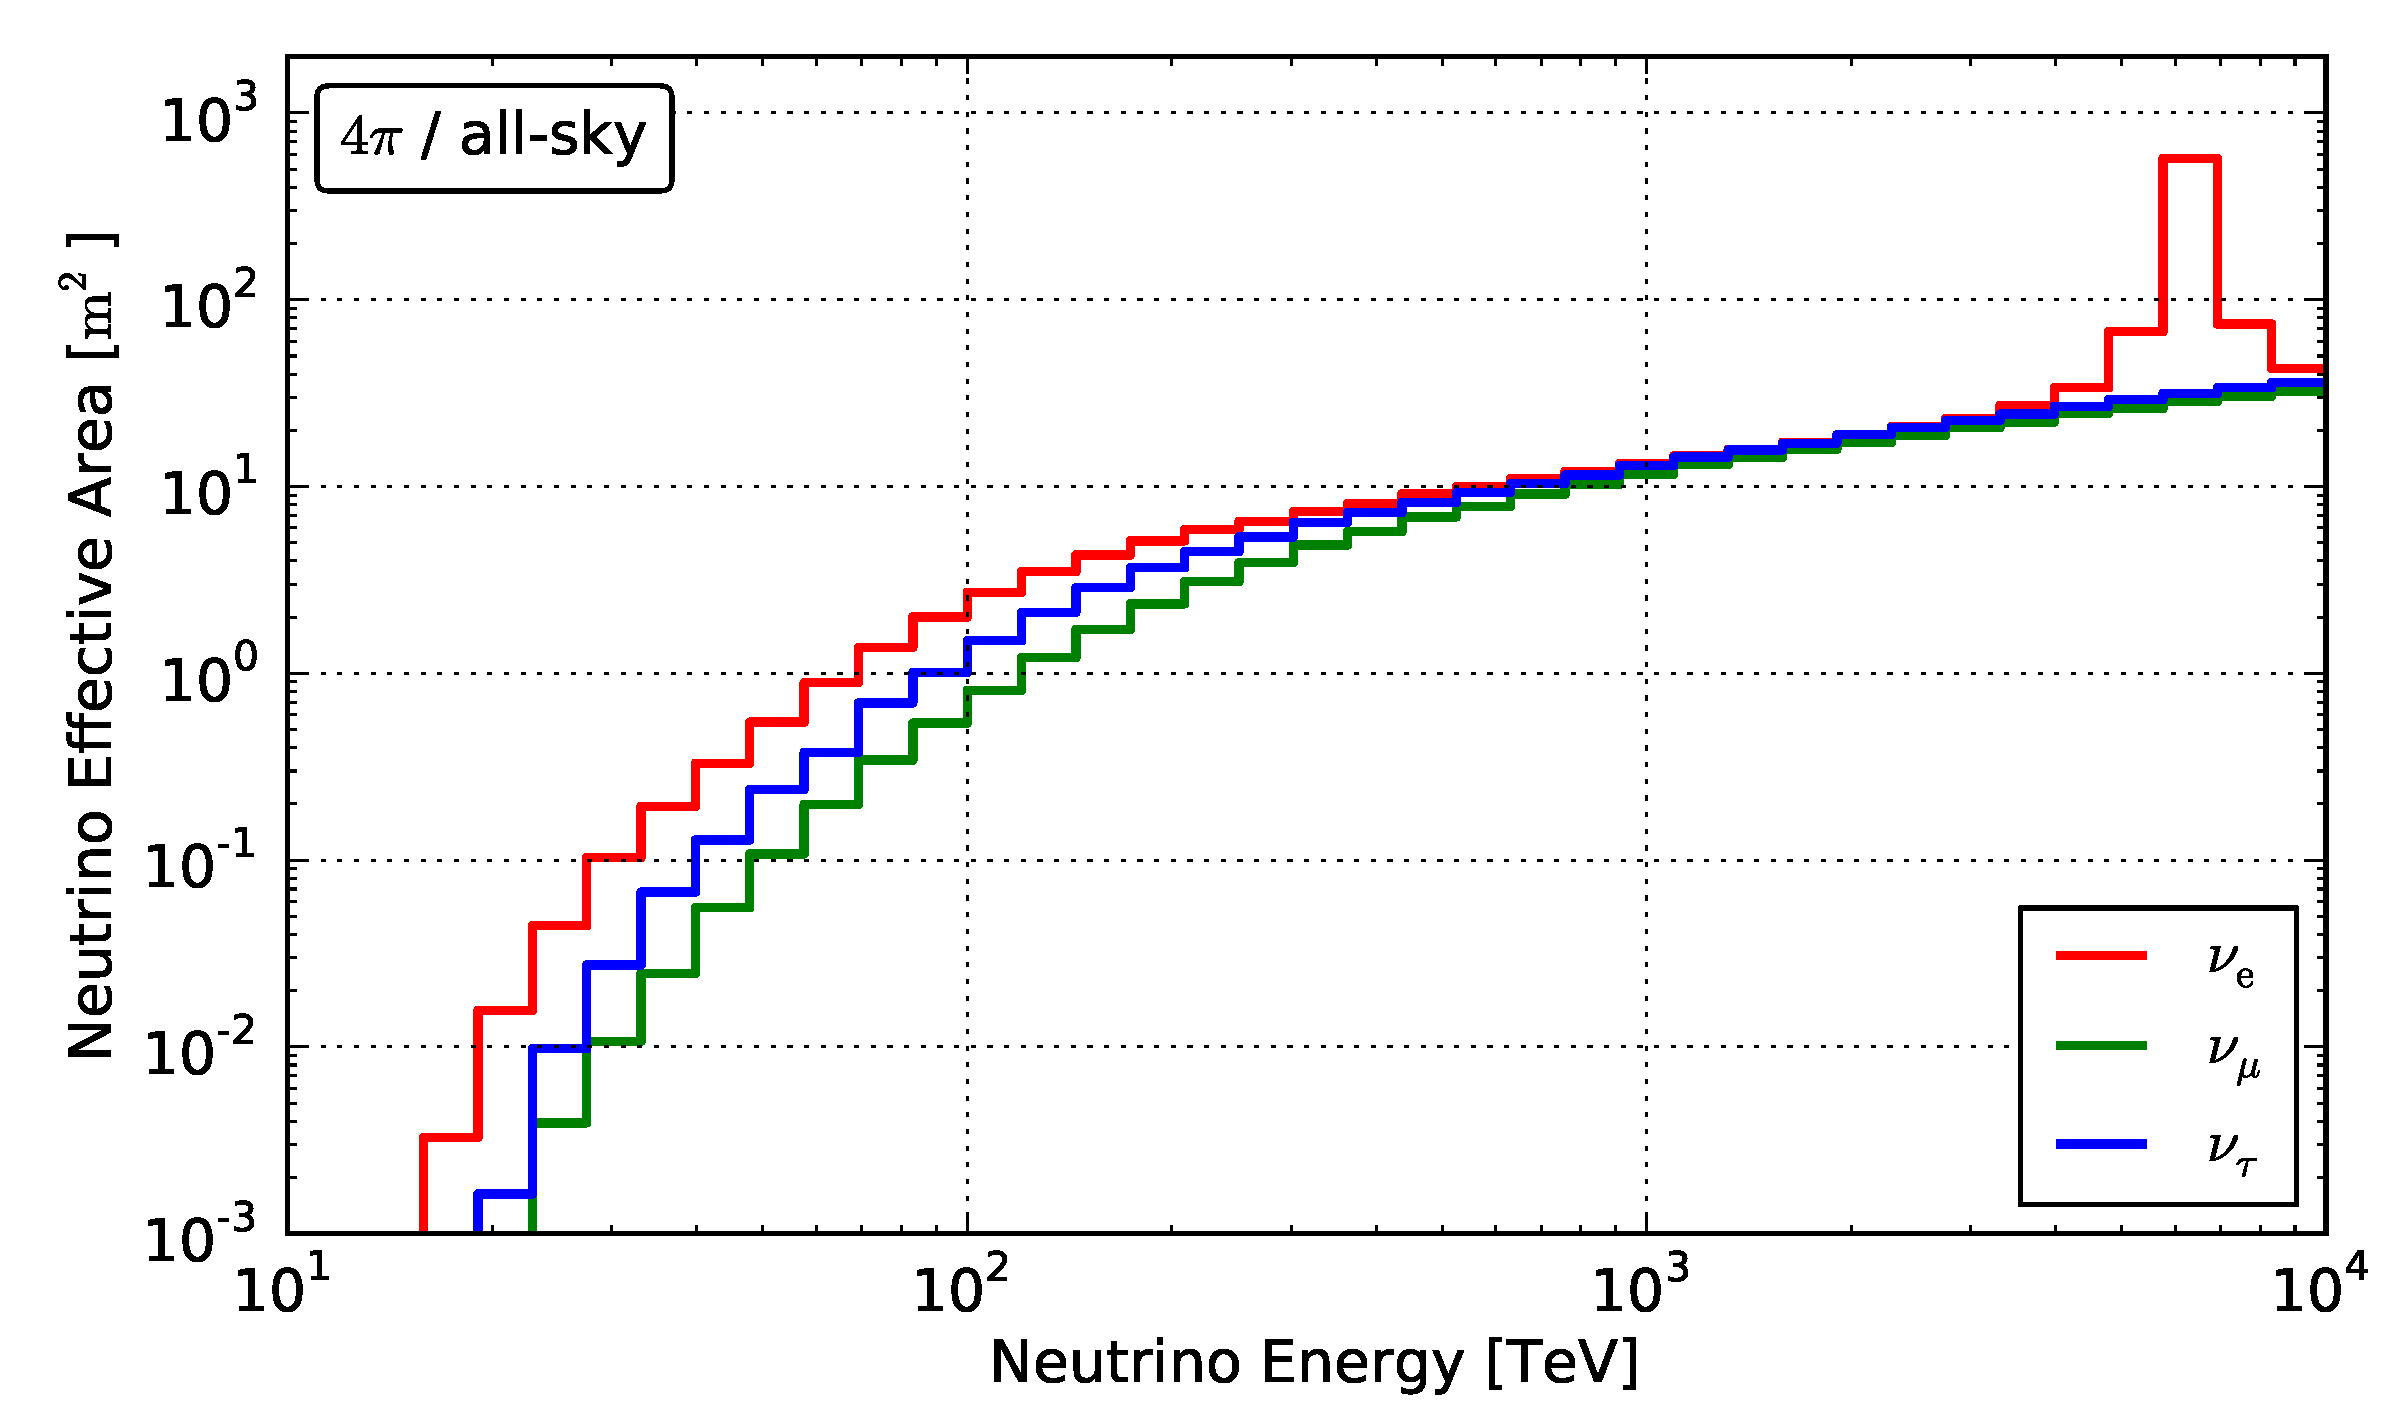 Neutrino effective area for the high-energy neutrino search in IceCube